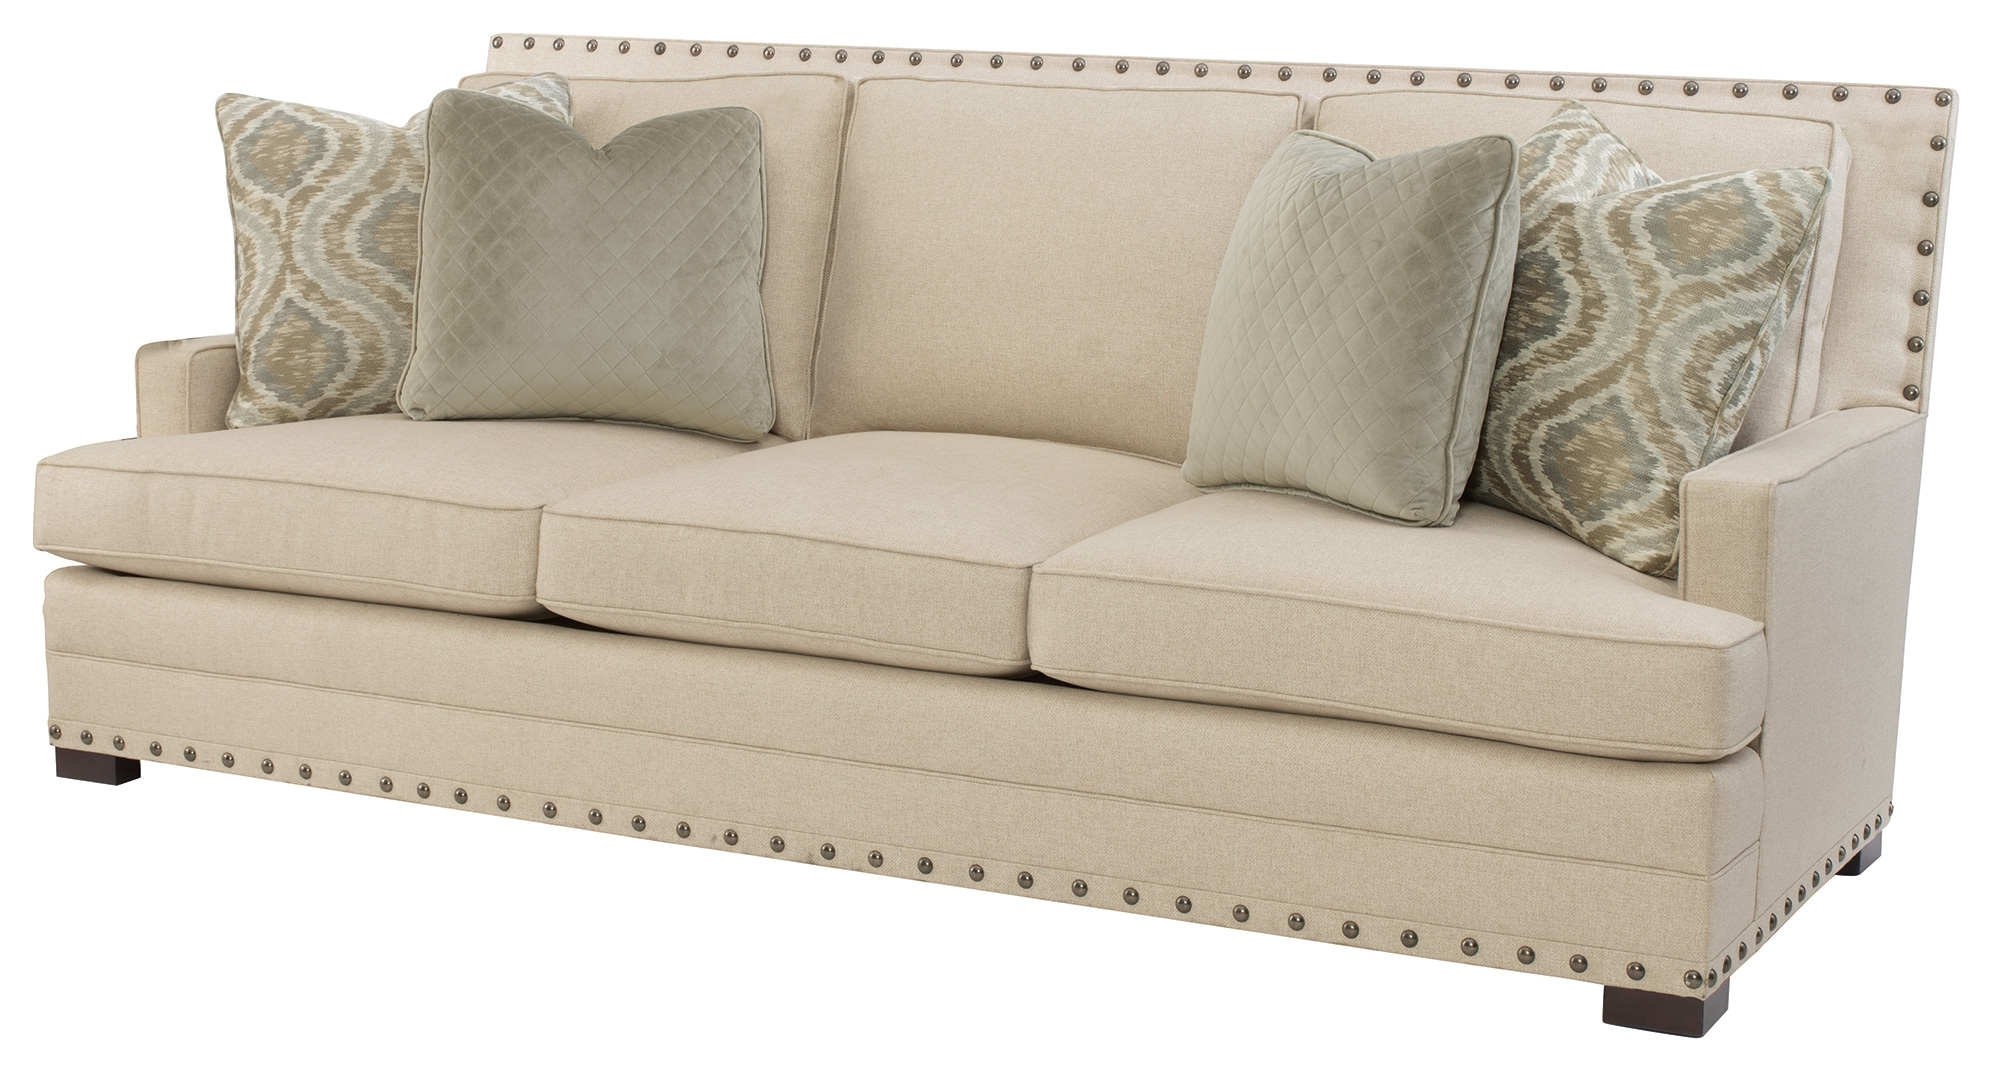 Fashionable Sectional Sofas With Nailheads With Regard To Home Decor Blog: Nailhead Trim: Then And Today (View 6 of 20)